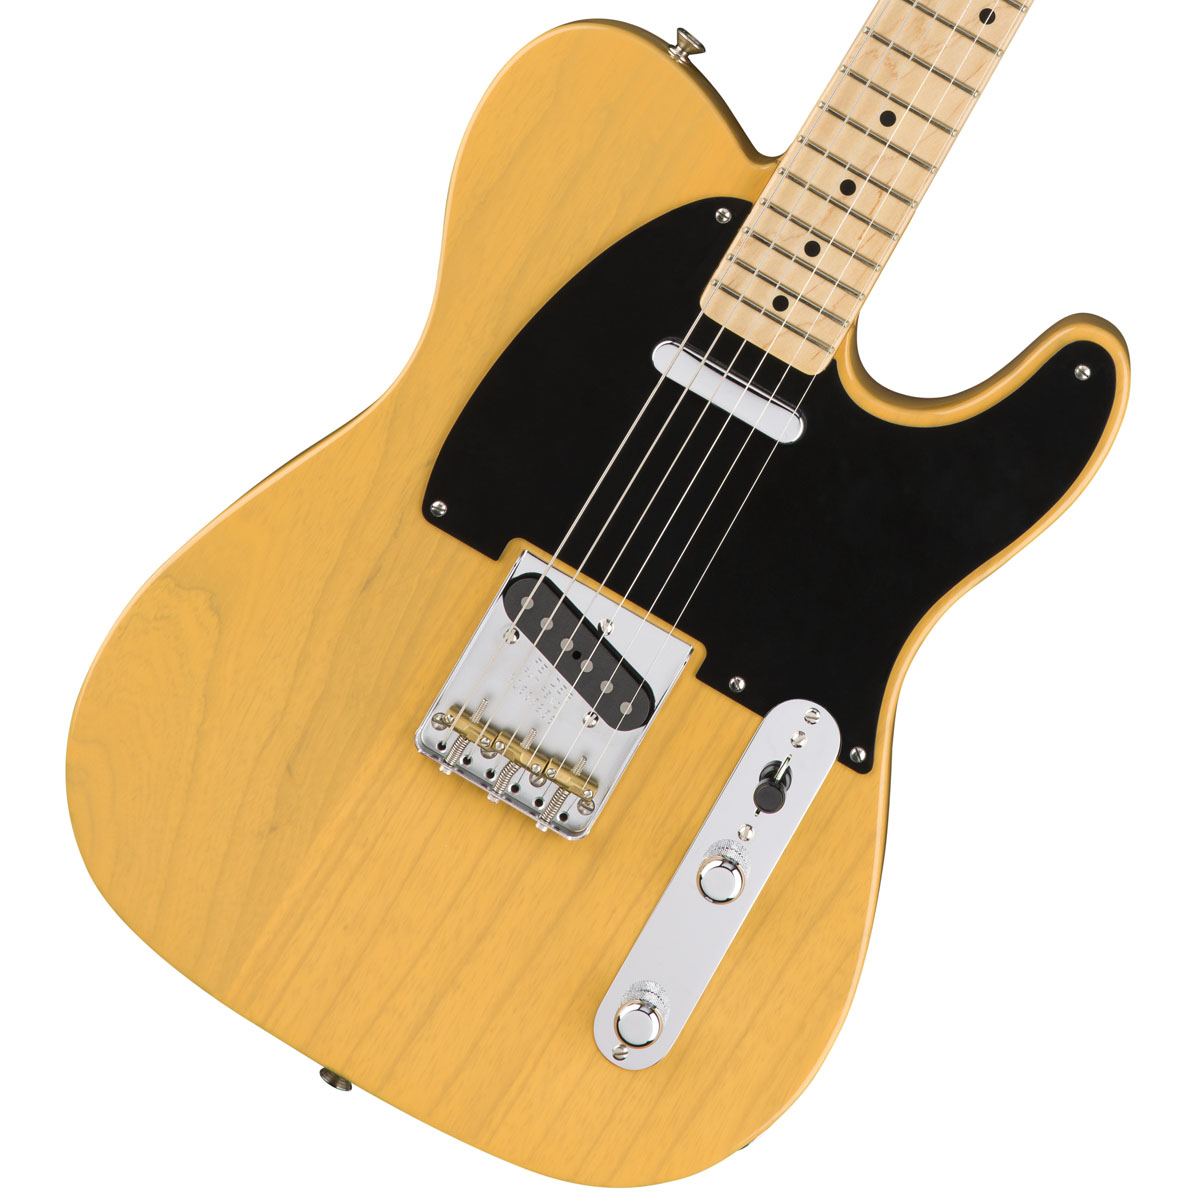 Fender USA / American Original 50s Telecaster Butterscotch Blonde 《カスタムショップのお手入れ用品を進呈/+671038200》《フェンダー純正グッズを進呈/+79083》